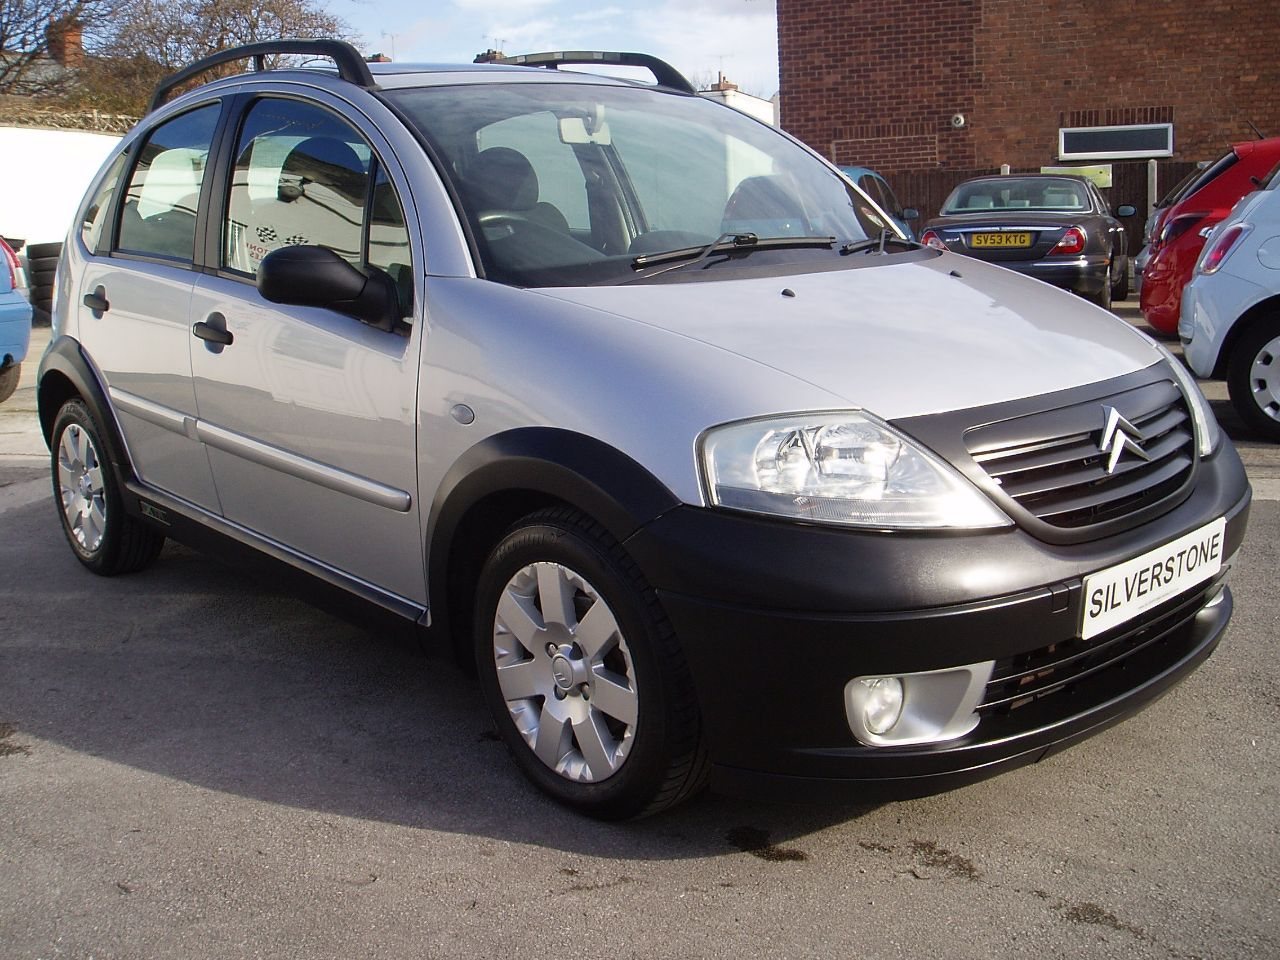 Citroen C3 Xtr For Sale Fhoto